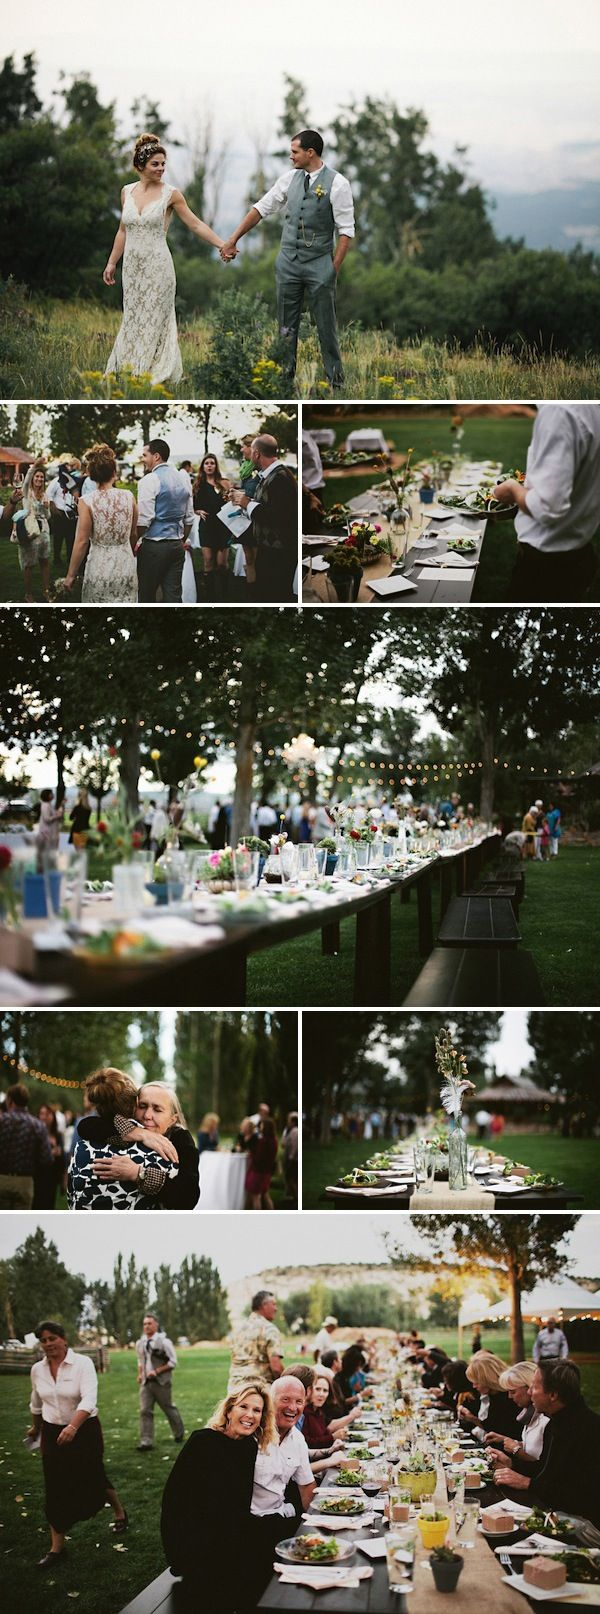 I love how casual and intimate this wedding is. It looks like everyone is having so much fun -- just celebrating. It would be a dream come true if i can have this for a wedding.